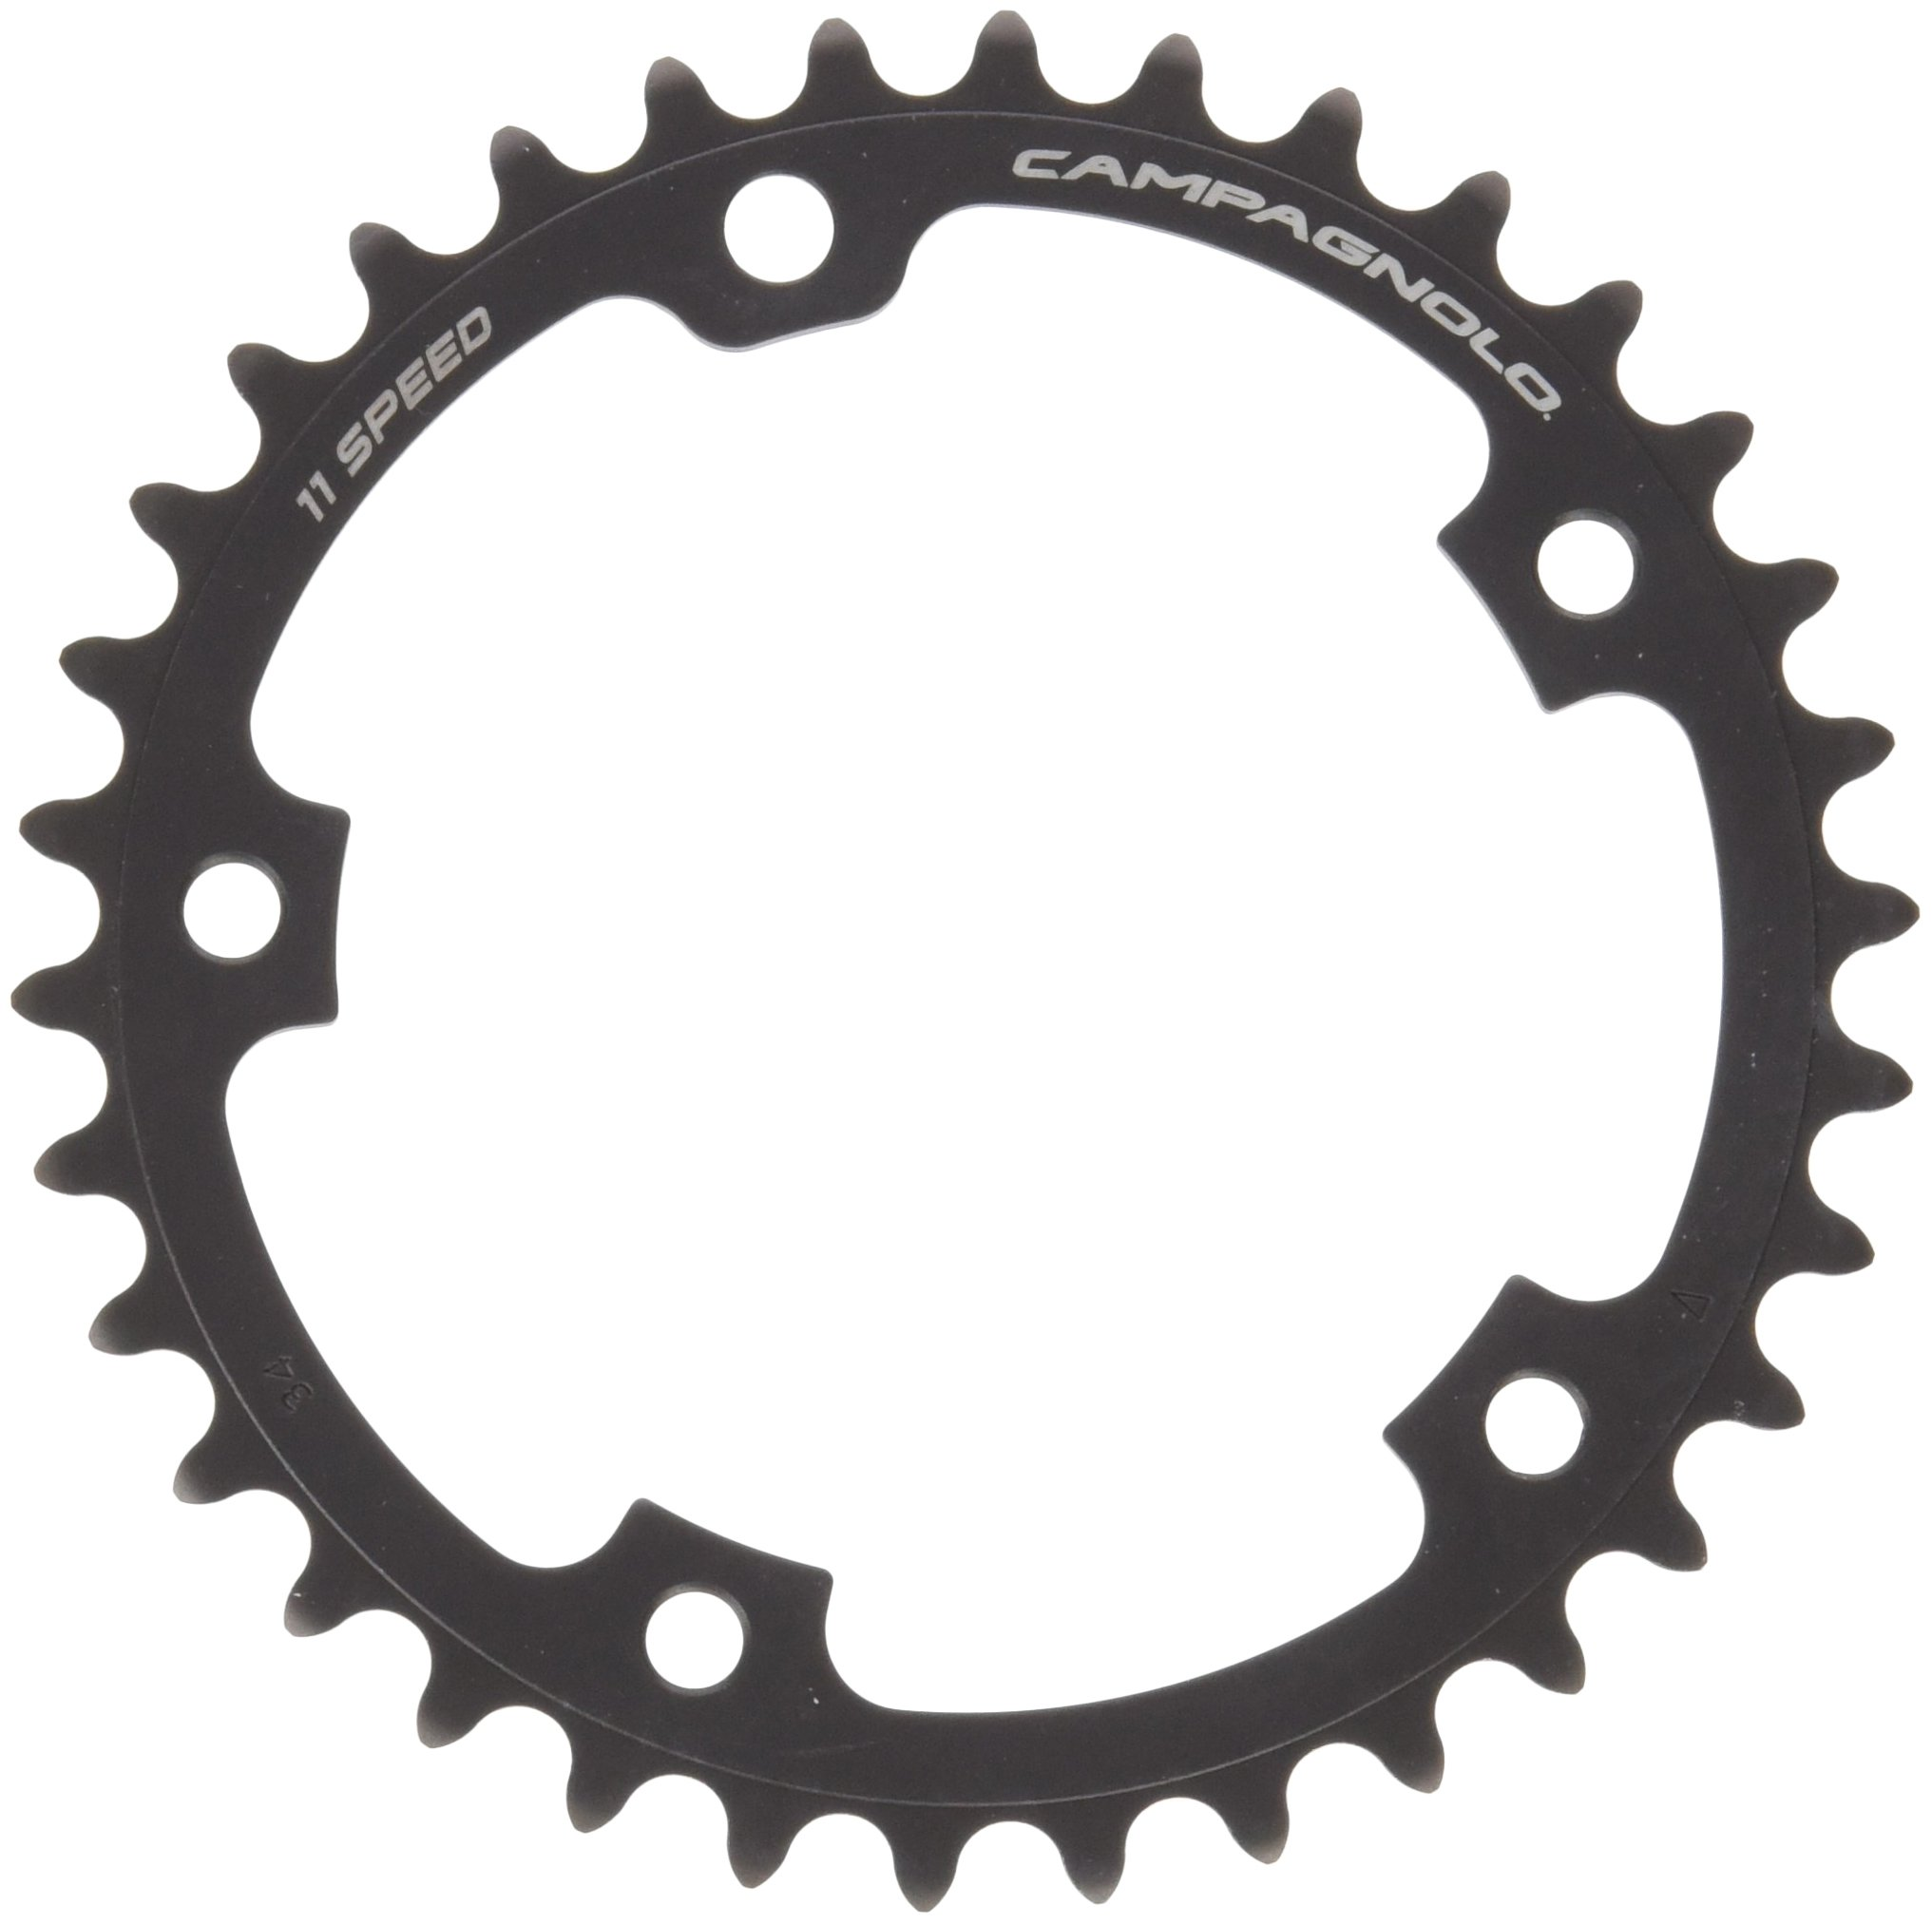 Campagnolo 11s 34t Ring for 2011 Super Record, Record and Chorus by Campagnolo (Image #1)